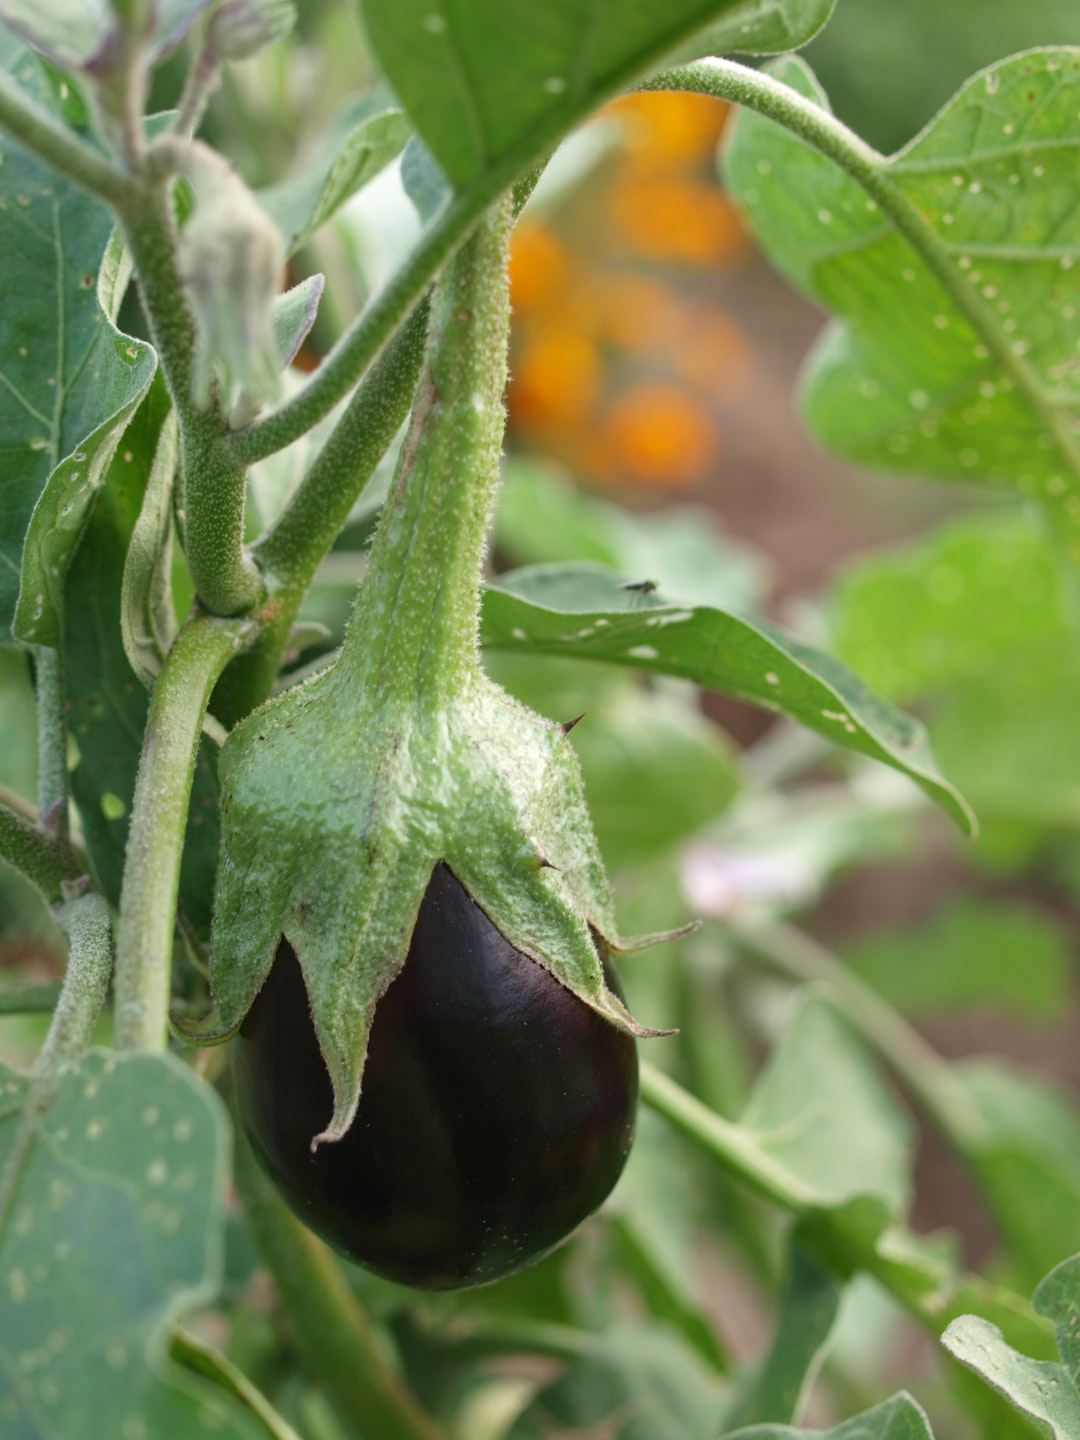 Ripening eggplant in an organic garden. The garden is a demonstration garden in Leesburg, Virginia USA created by the Master Gardening program.